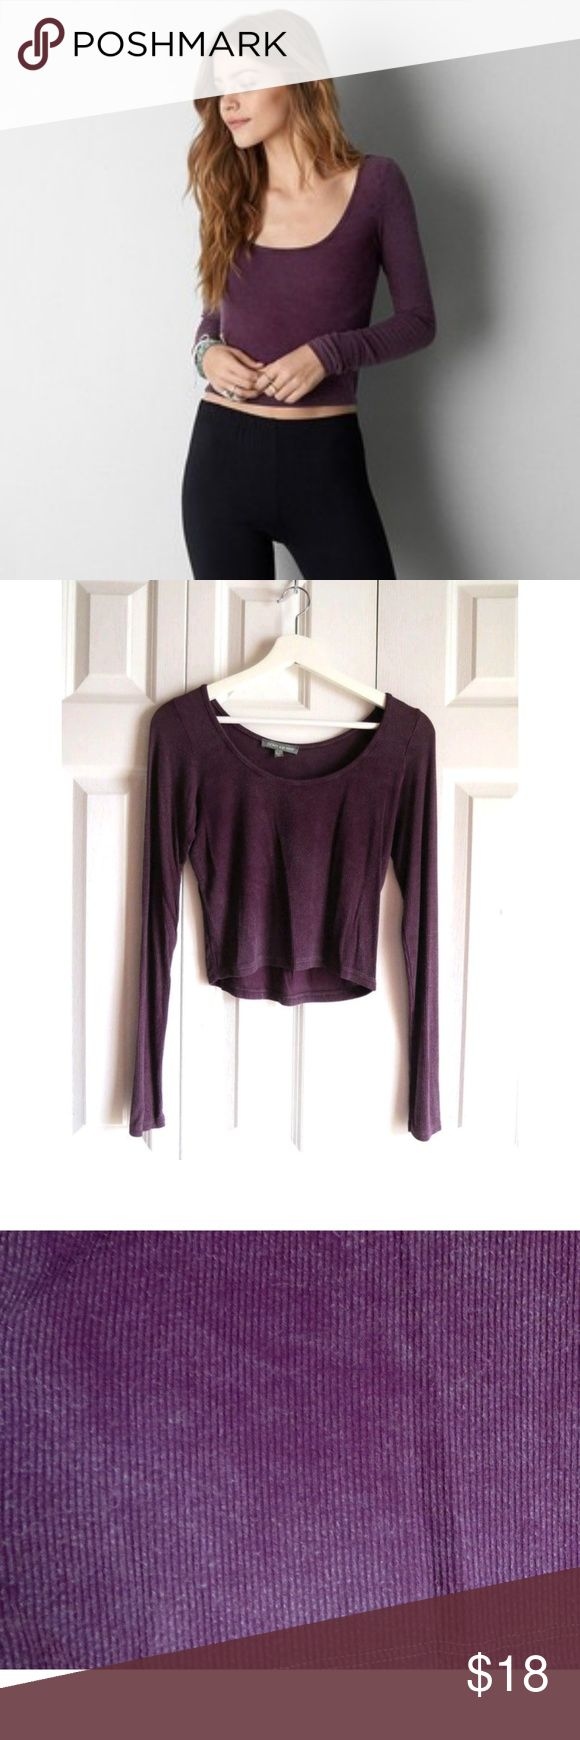 AEO Ribbed Ballet Crop Top No trades! Super cute and soft long sleeve fitted ribbed ballet crop top - Don't Ask Why by American Eagle. Beautiful maroon color. Intentional worn and faded look (purchased like that from American Eagle's website), only worn once or twice. Tag says one size, best fits a medium. American Eagle Outfitters Tops Crop Tops